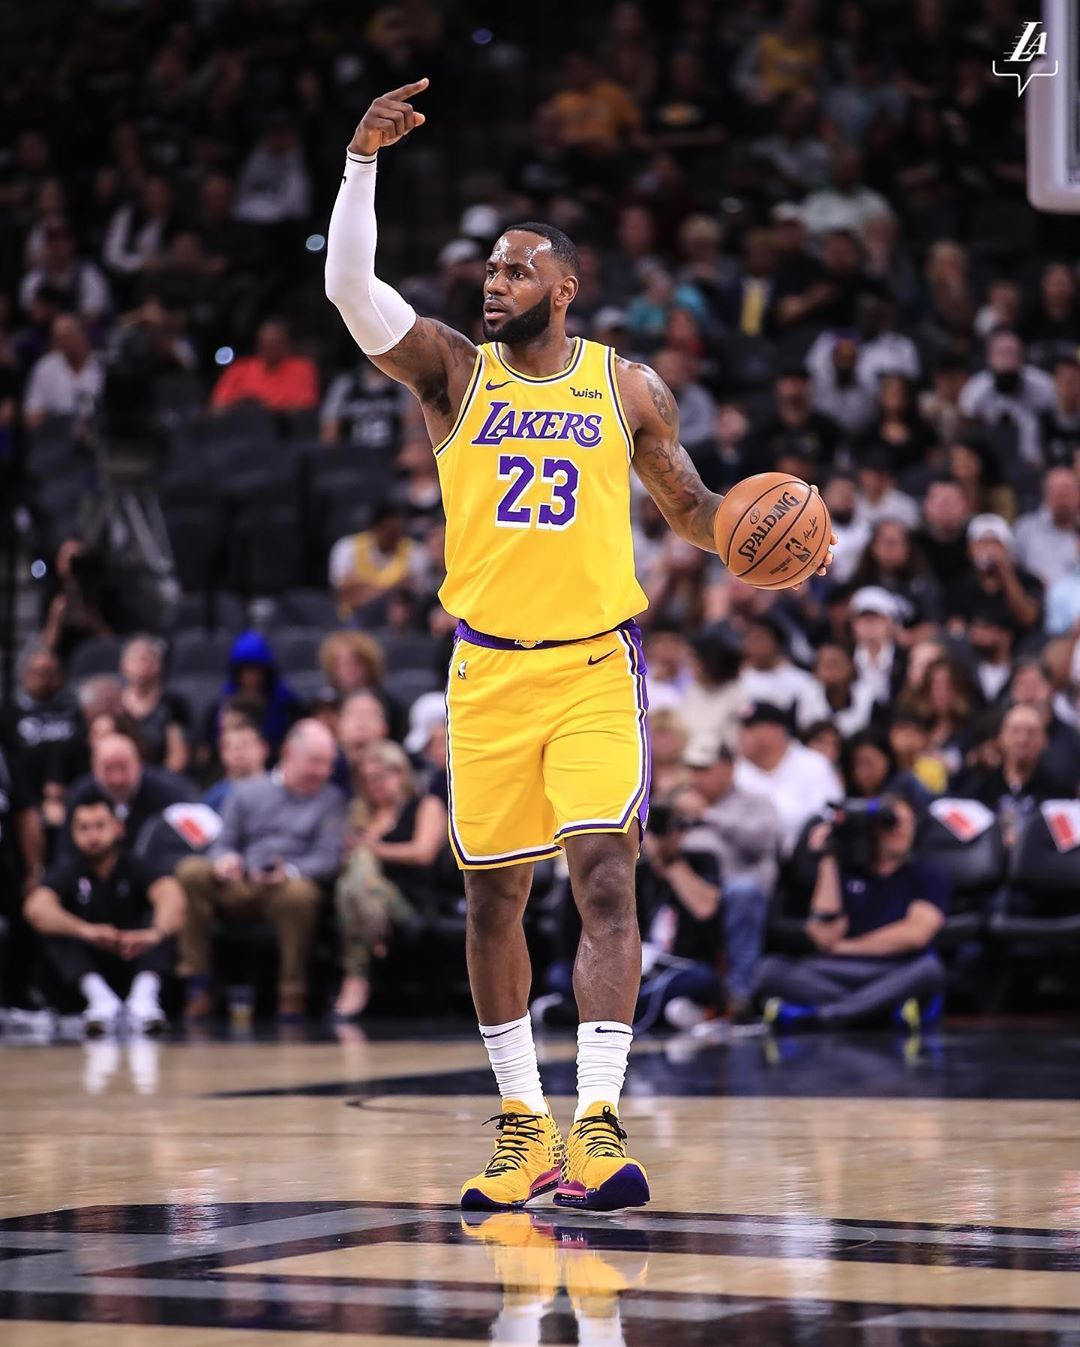 Los Angeles Lakers On Instagram Win No 15 Through The Lakeshow Los Angeles Lakers Lakers King Lebron